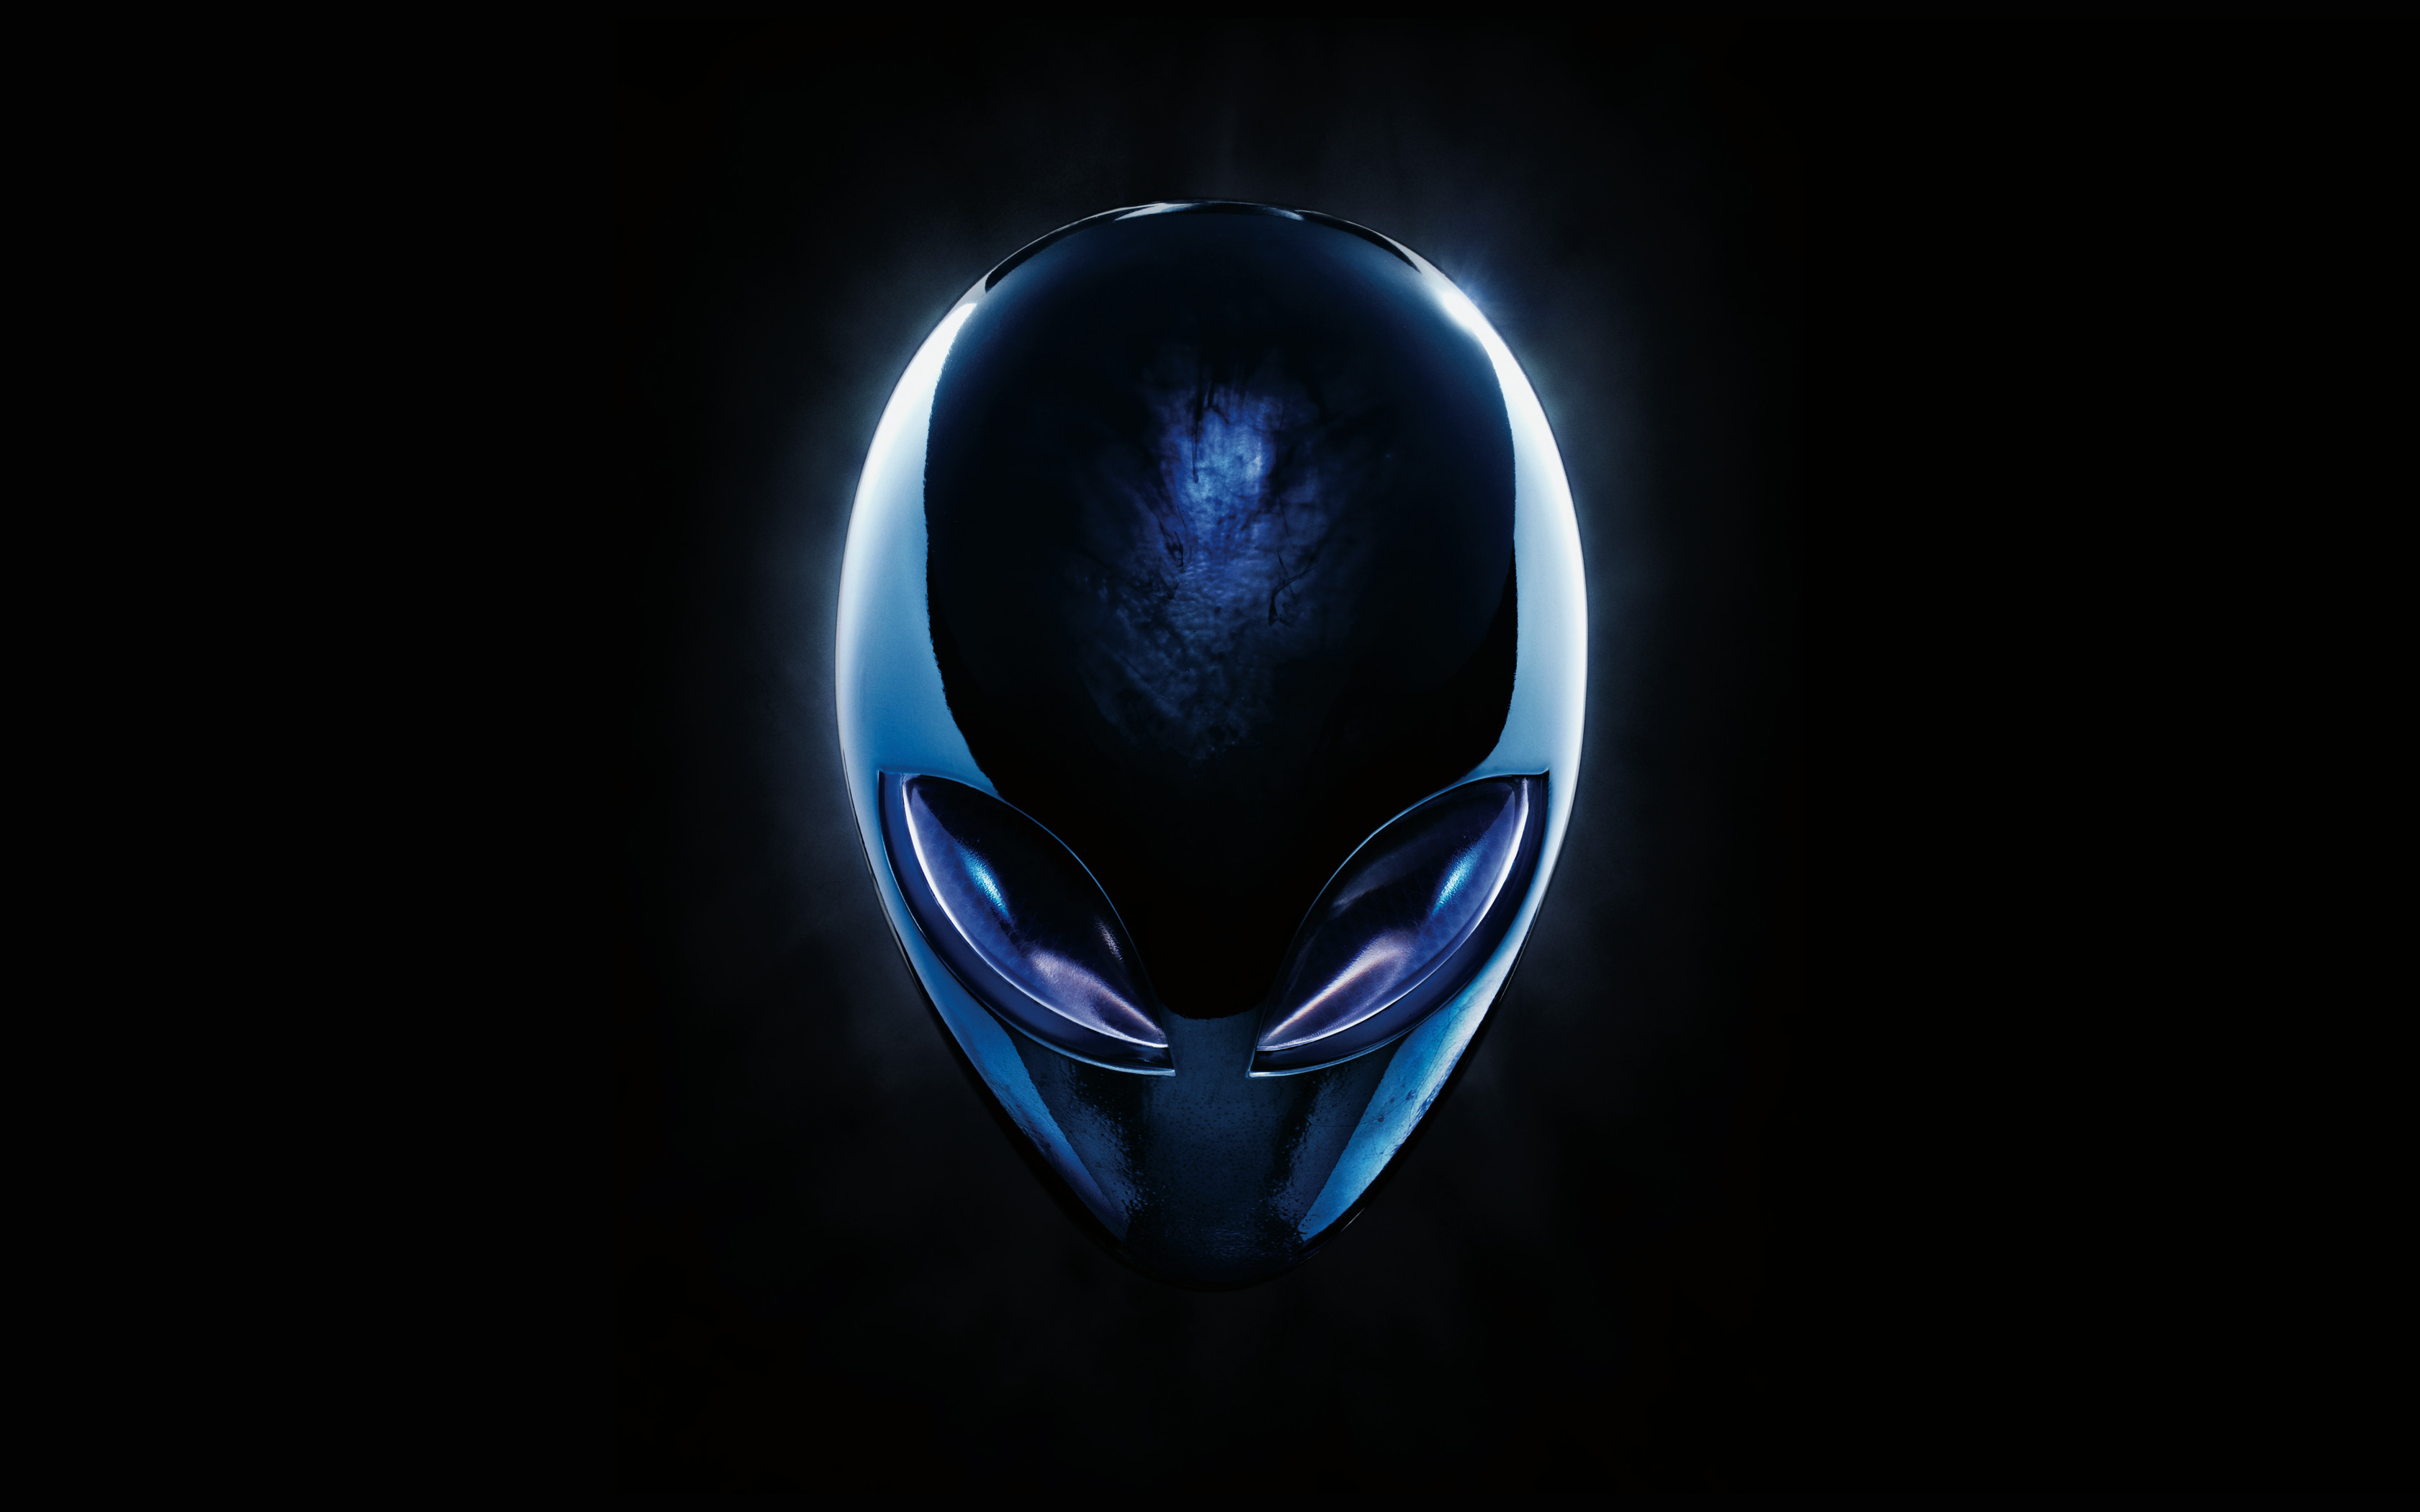 Alienware Desktop Backgrounds can finish off the look of your Alienware Fx  Themes by complimenting the colors.